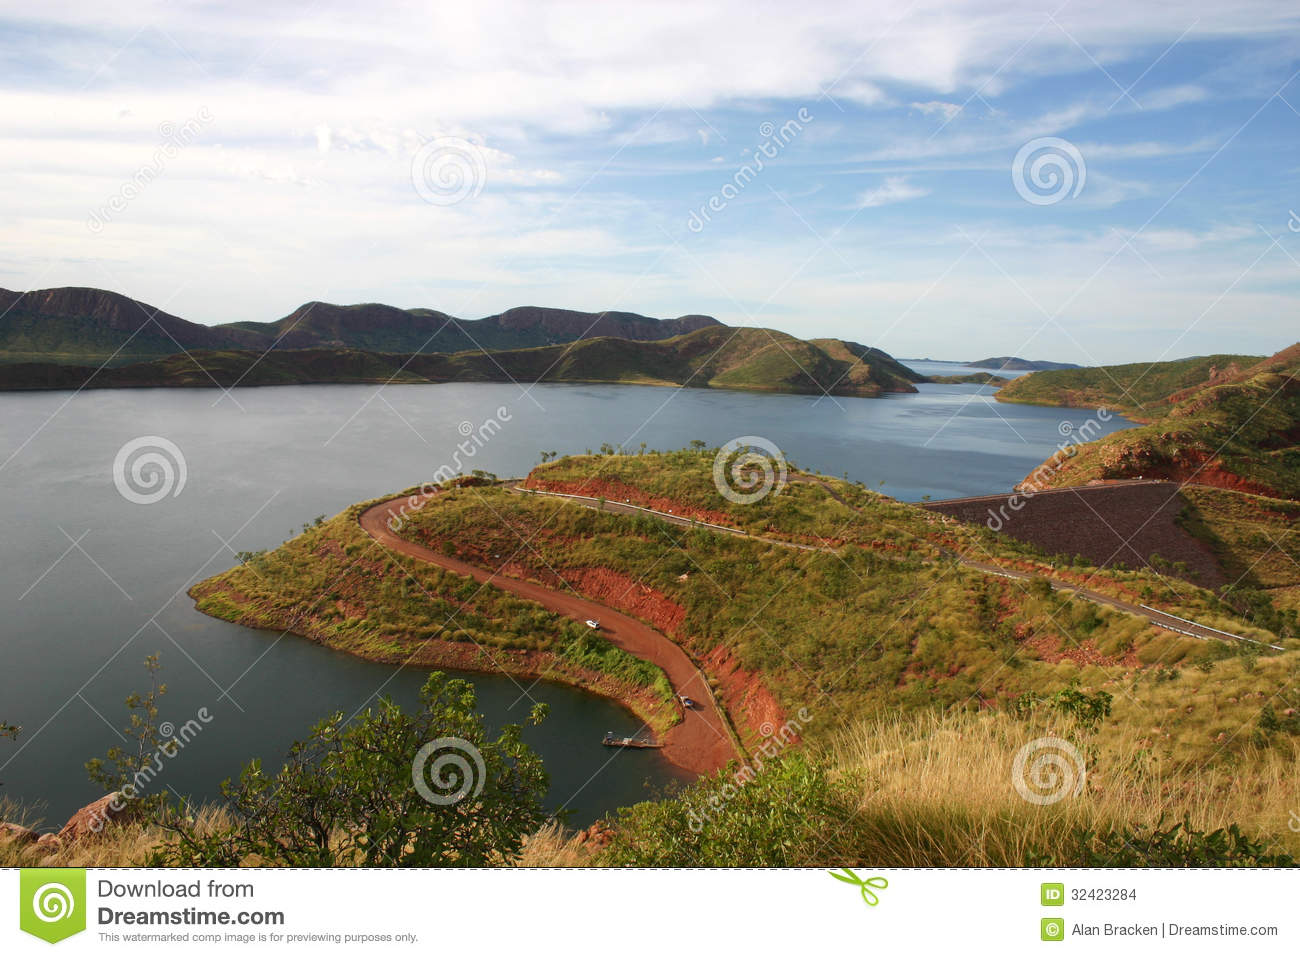 Kununurra Australia  city photo : Overlooking Lake Argle, Kununurra, Western Australia Stock Images ...